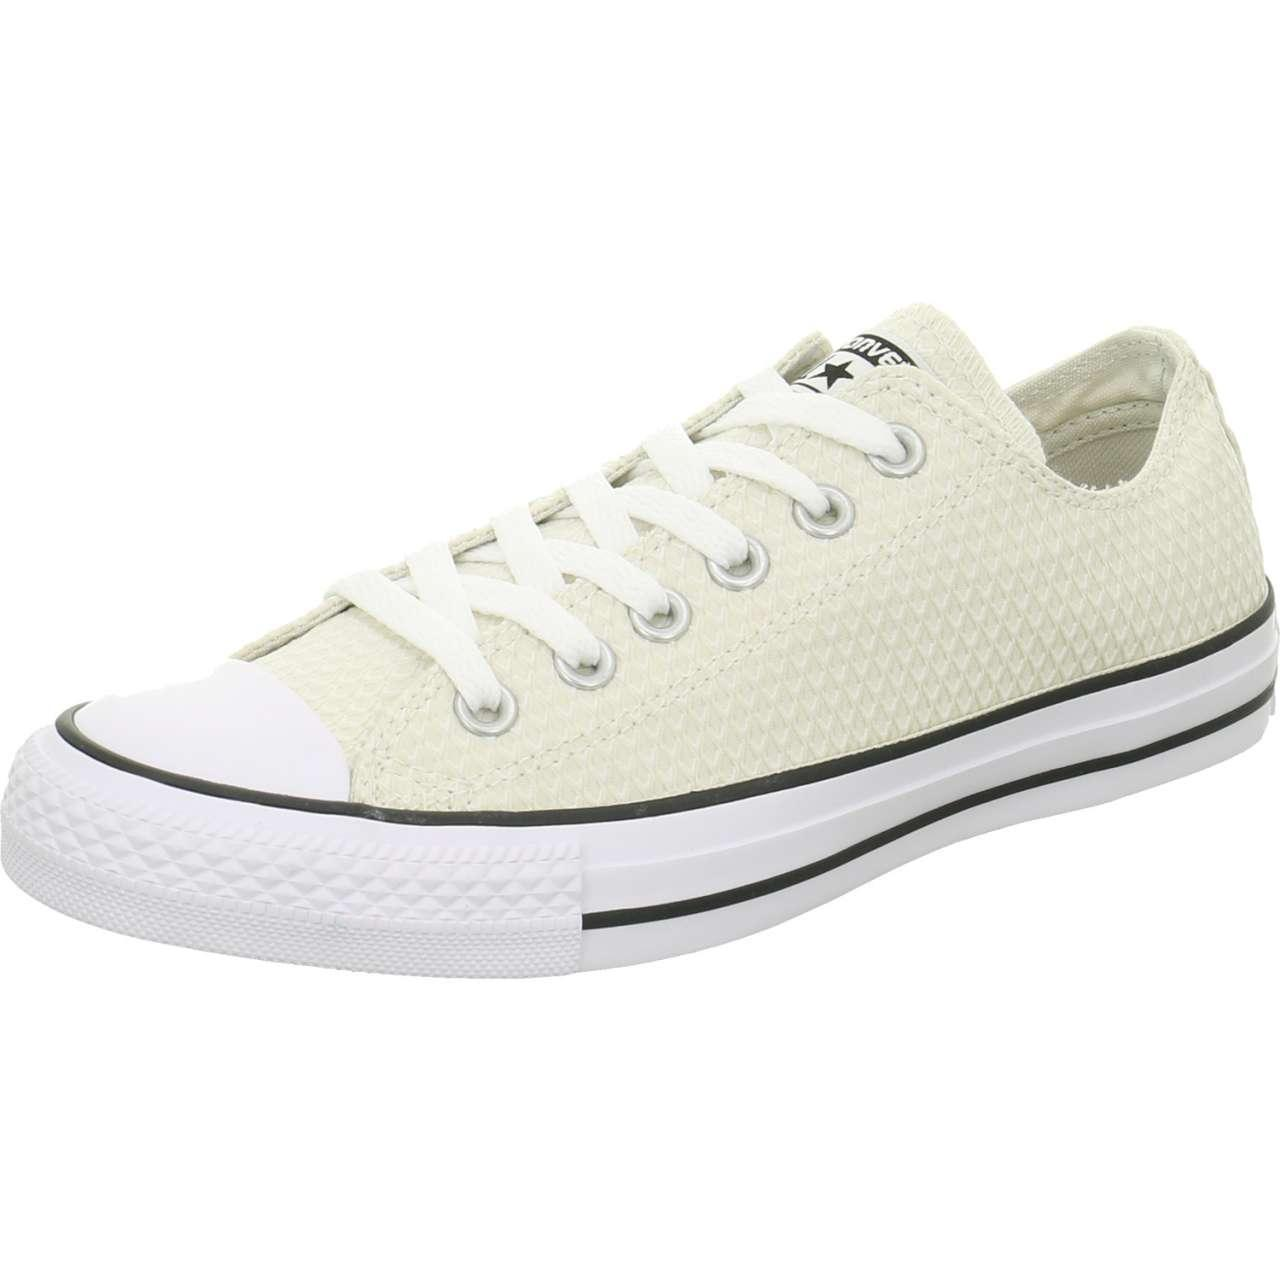 70e1b3a0723 Converse Wo Trainers Grey Buff white Snake Woven in White - Lyst